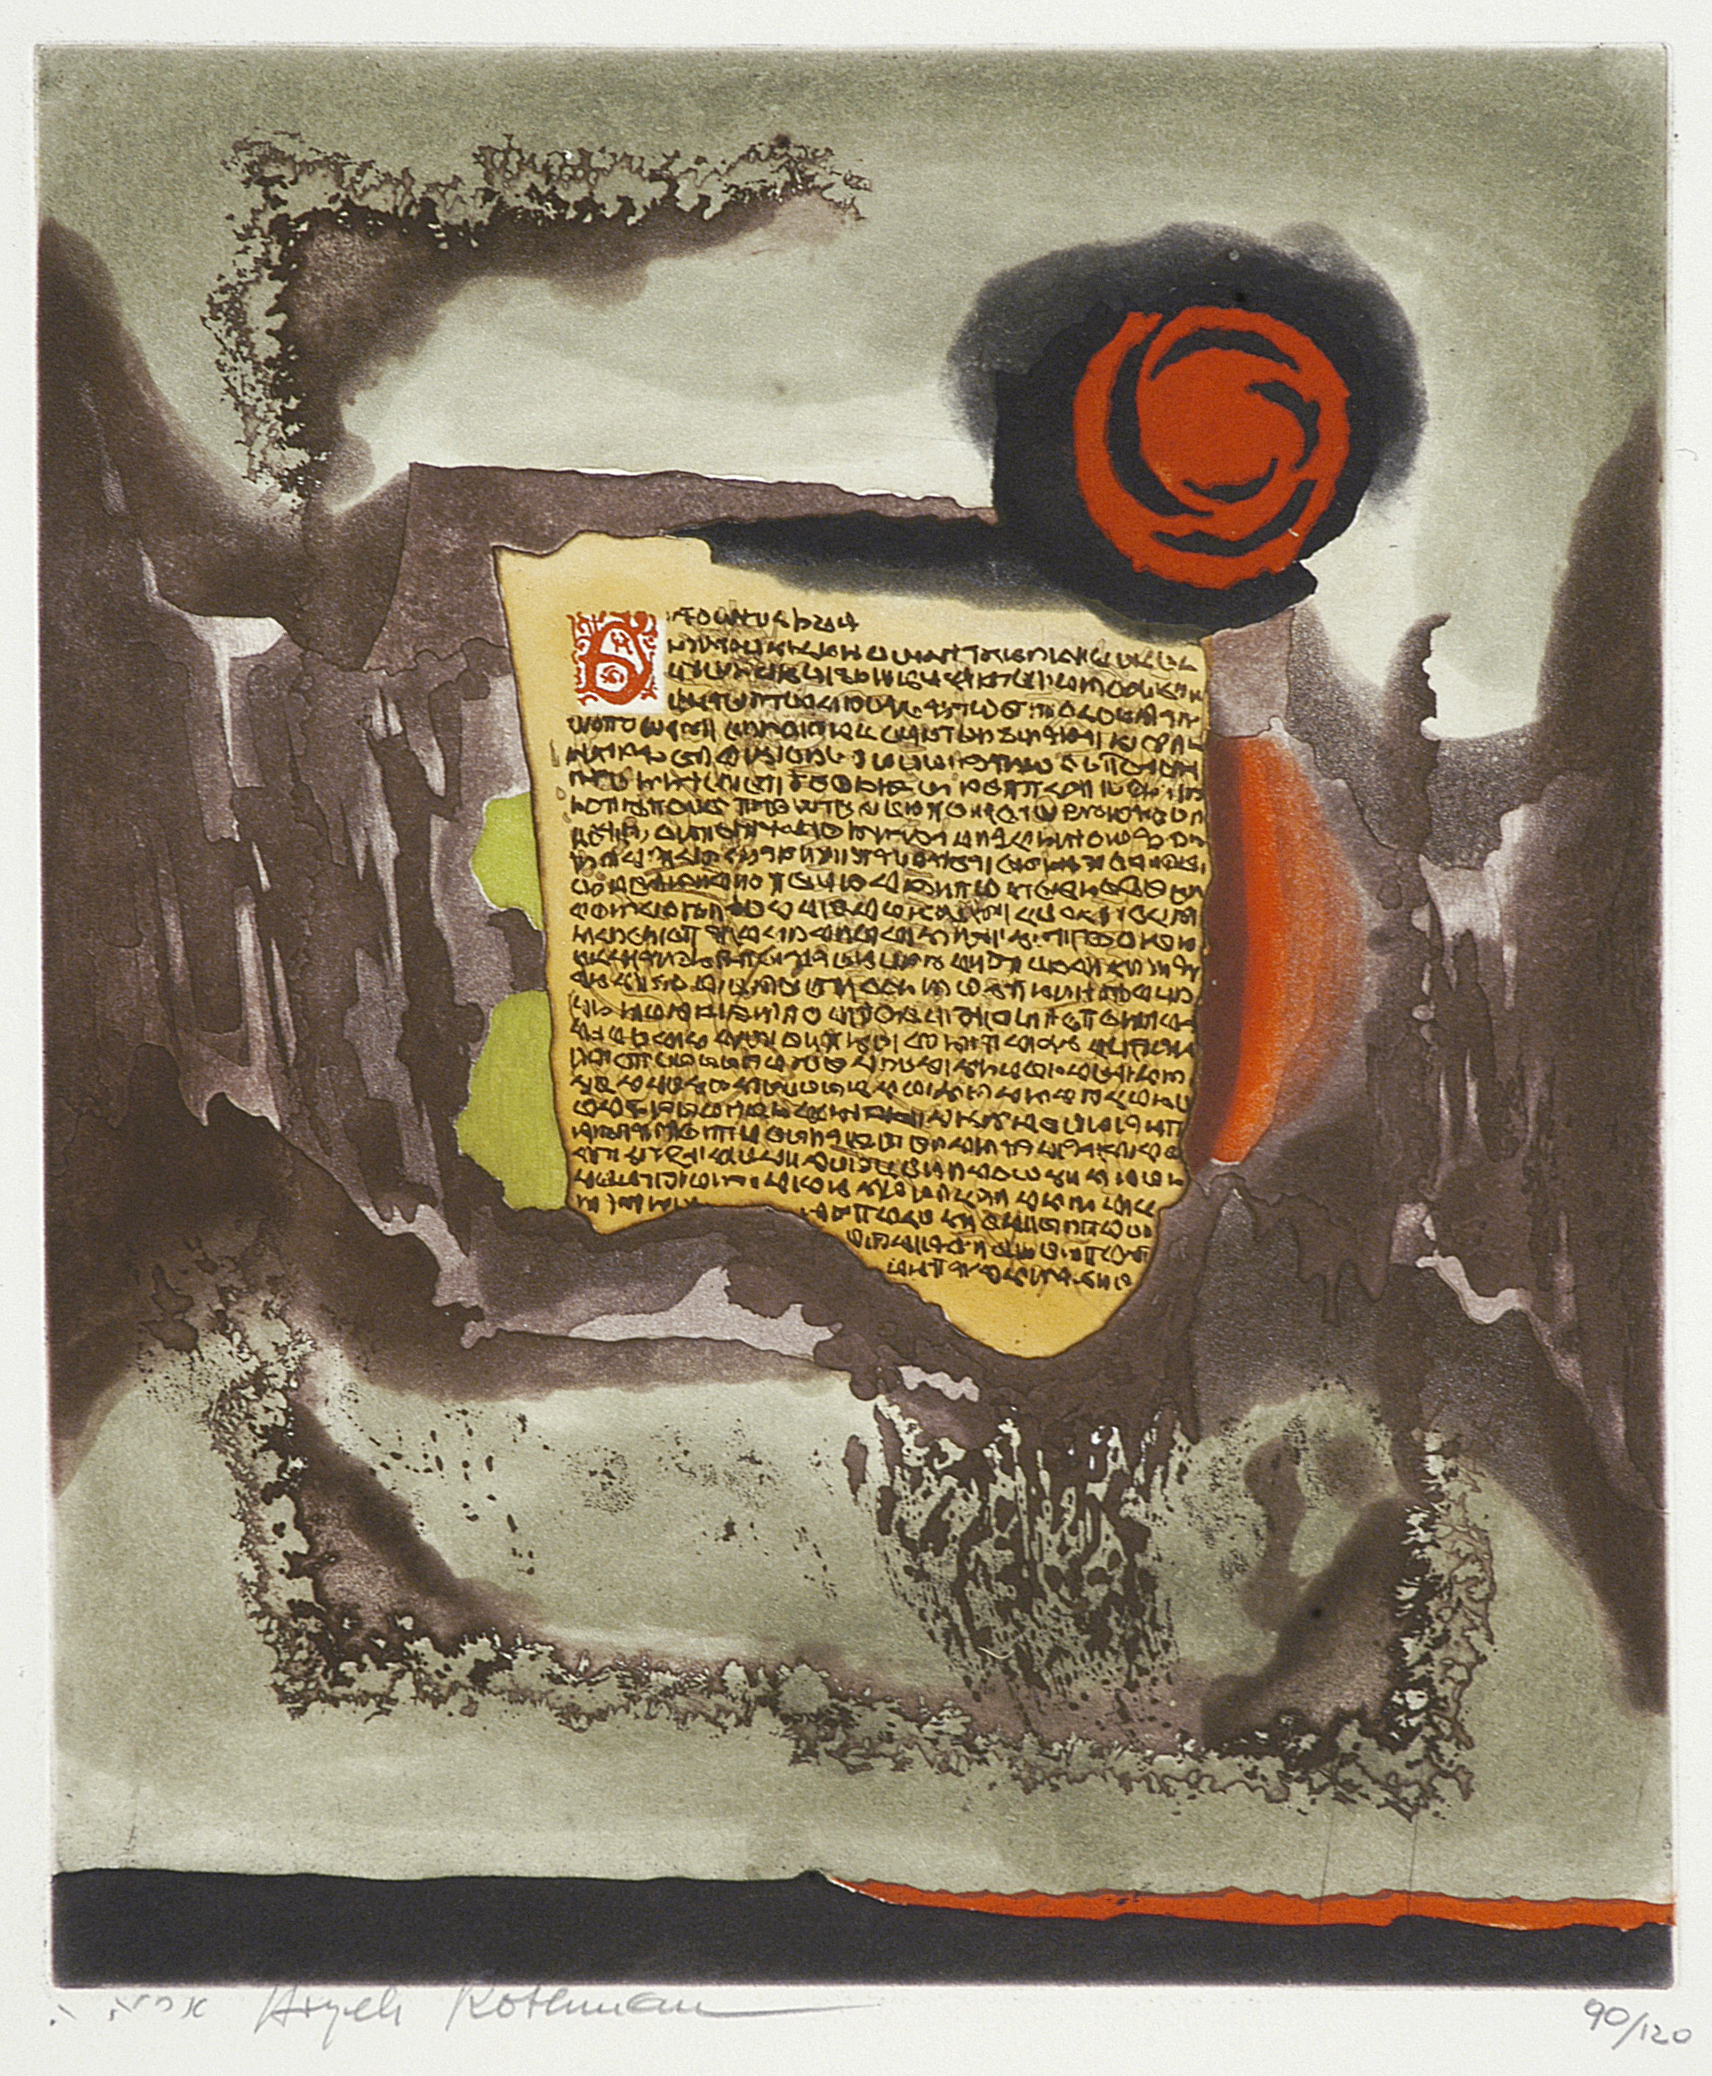 Illuminated Manuscript by Aryeh Rothman